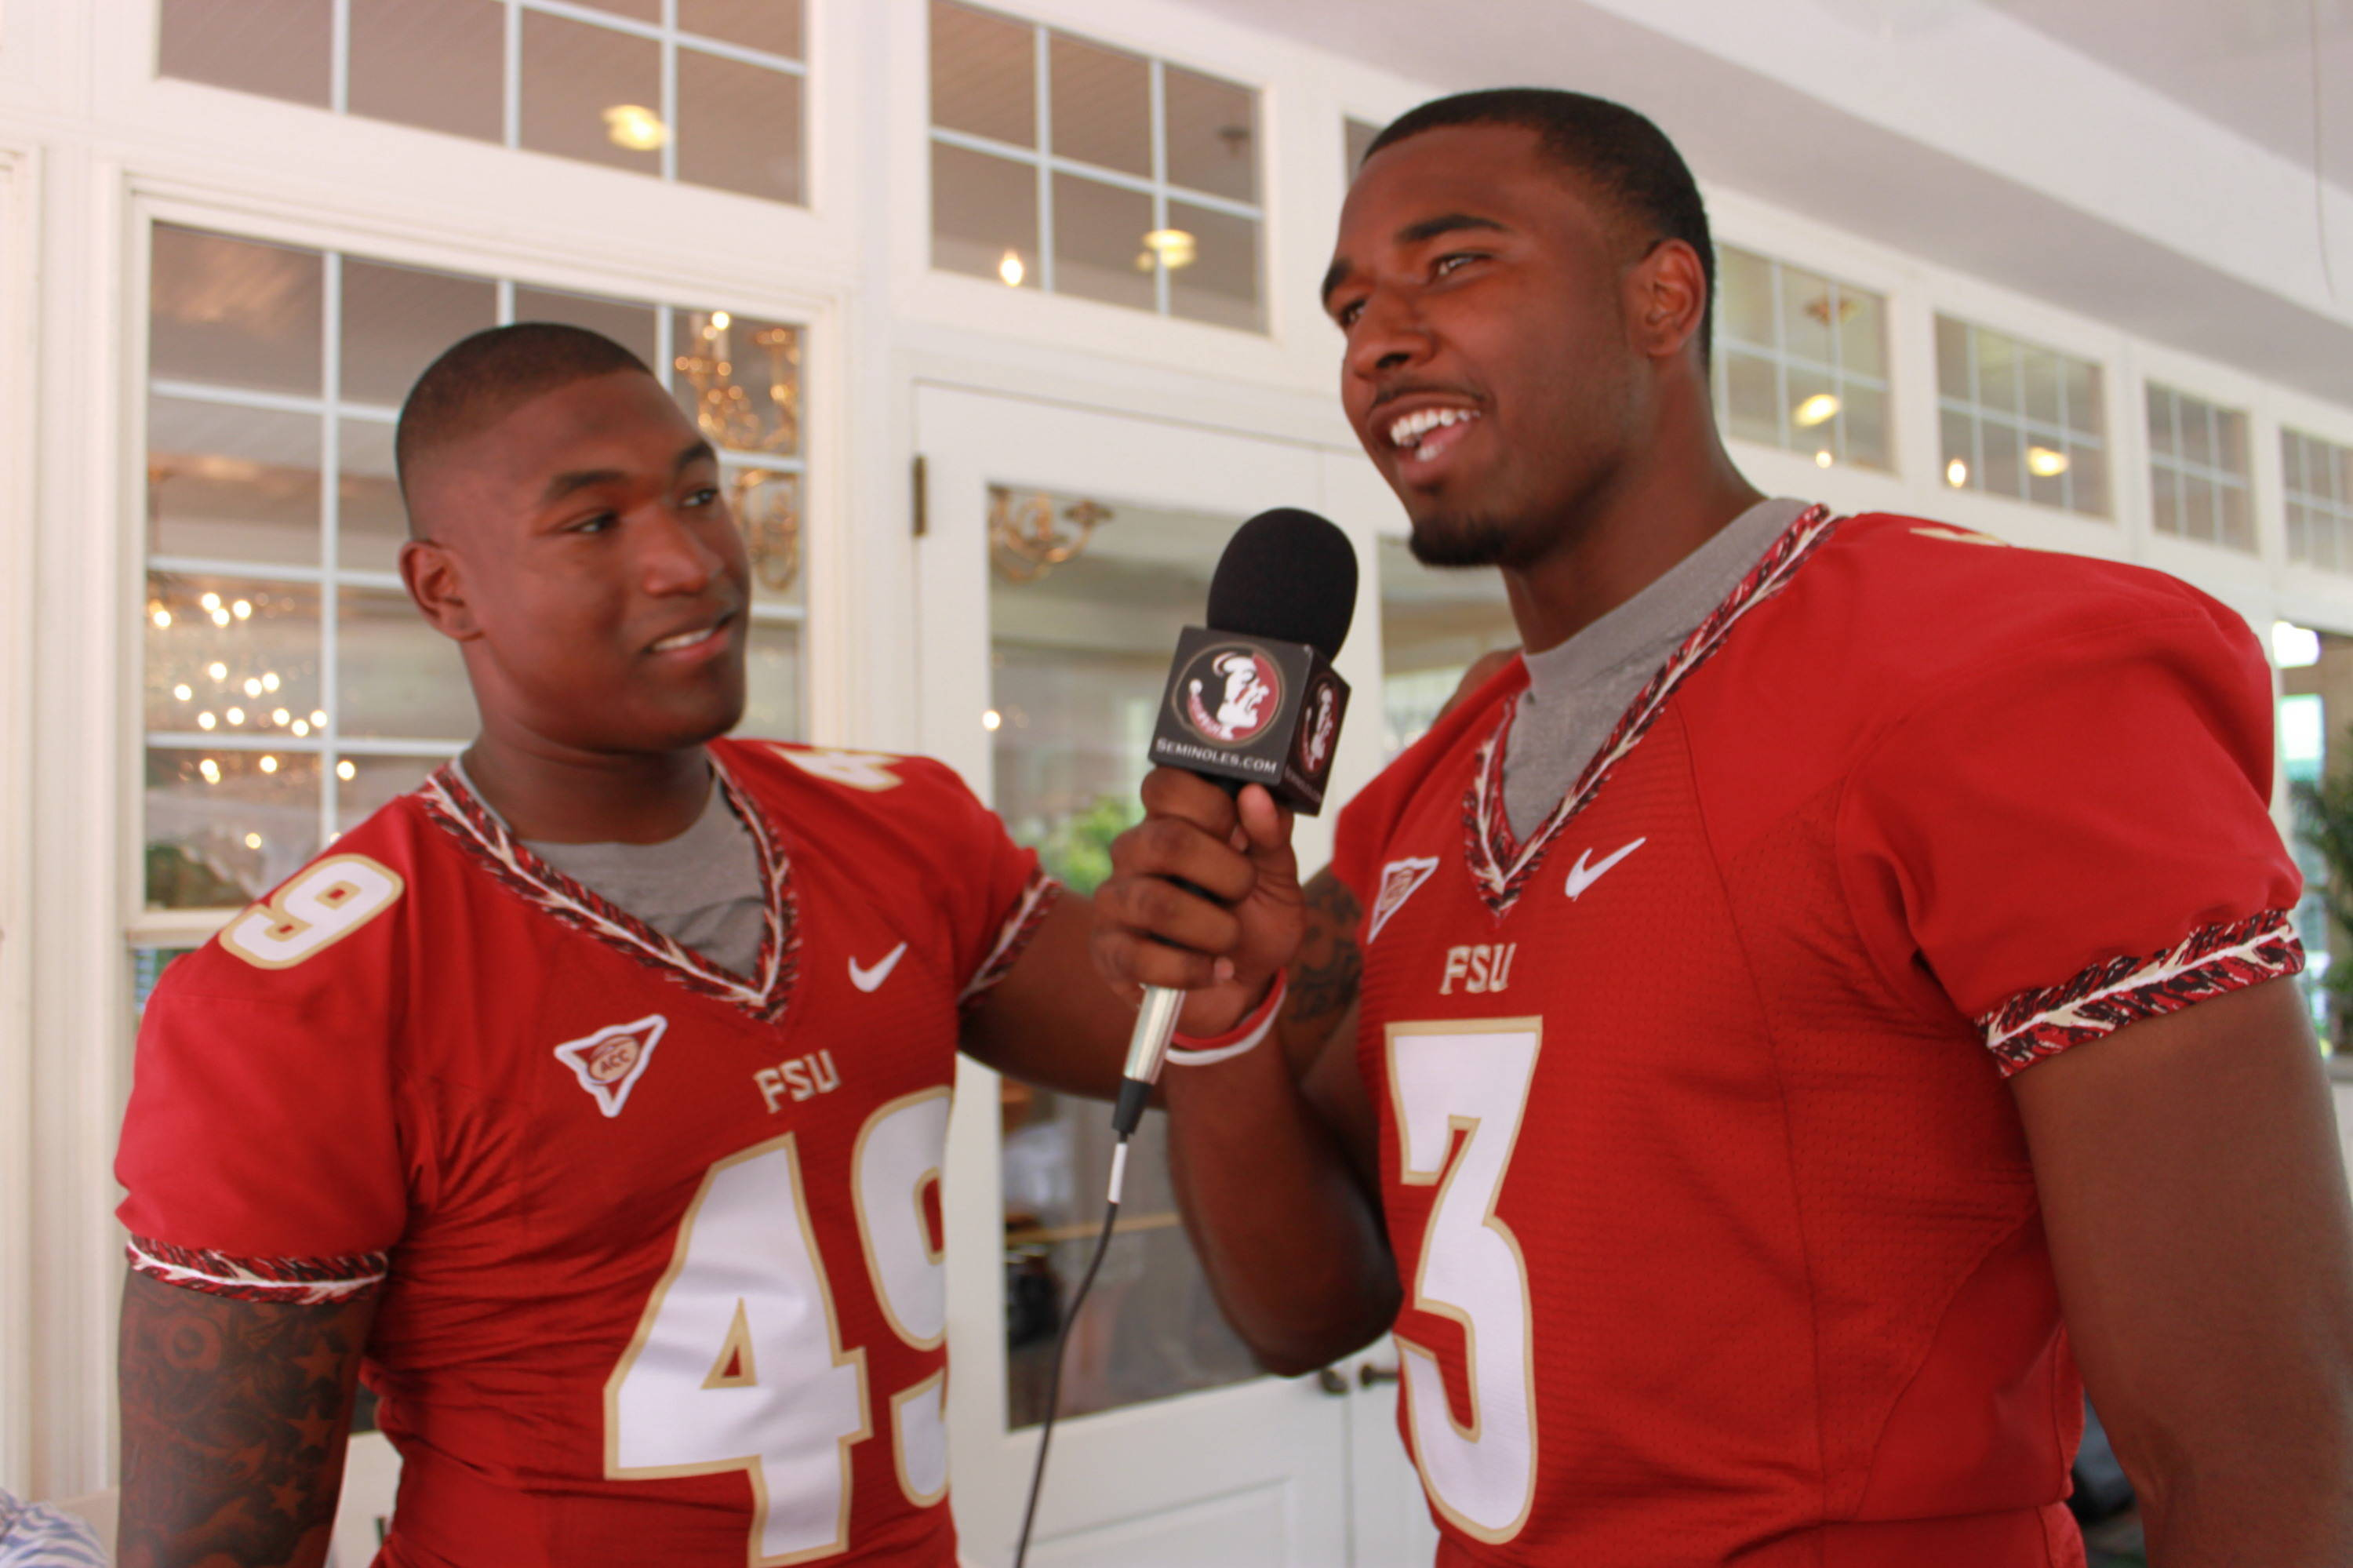 Florida State quarterback EJ Manuel turns the tables and conducts an impromptu interview with teammate Brandon Jenkins.